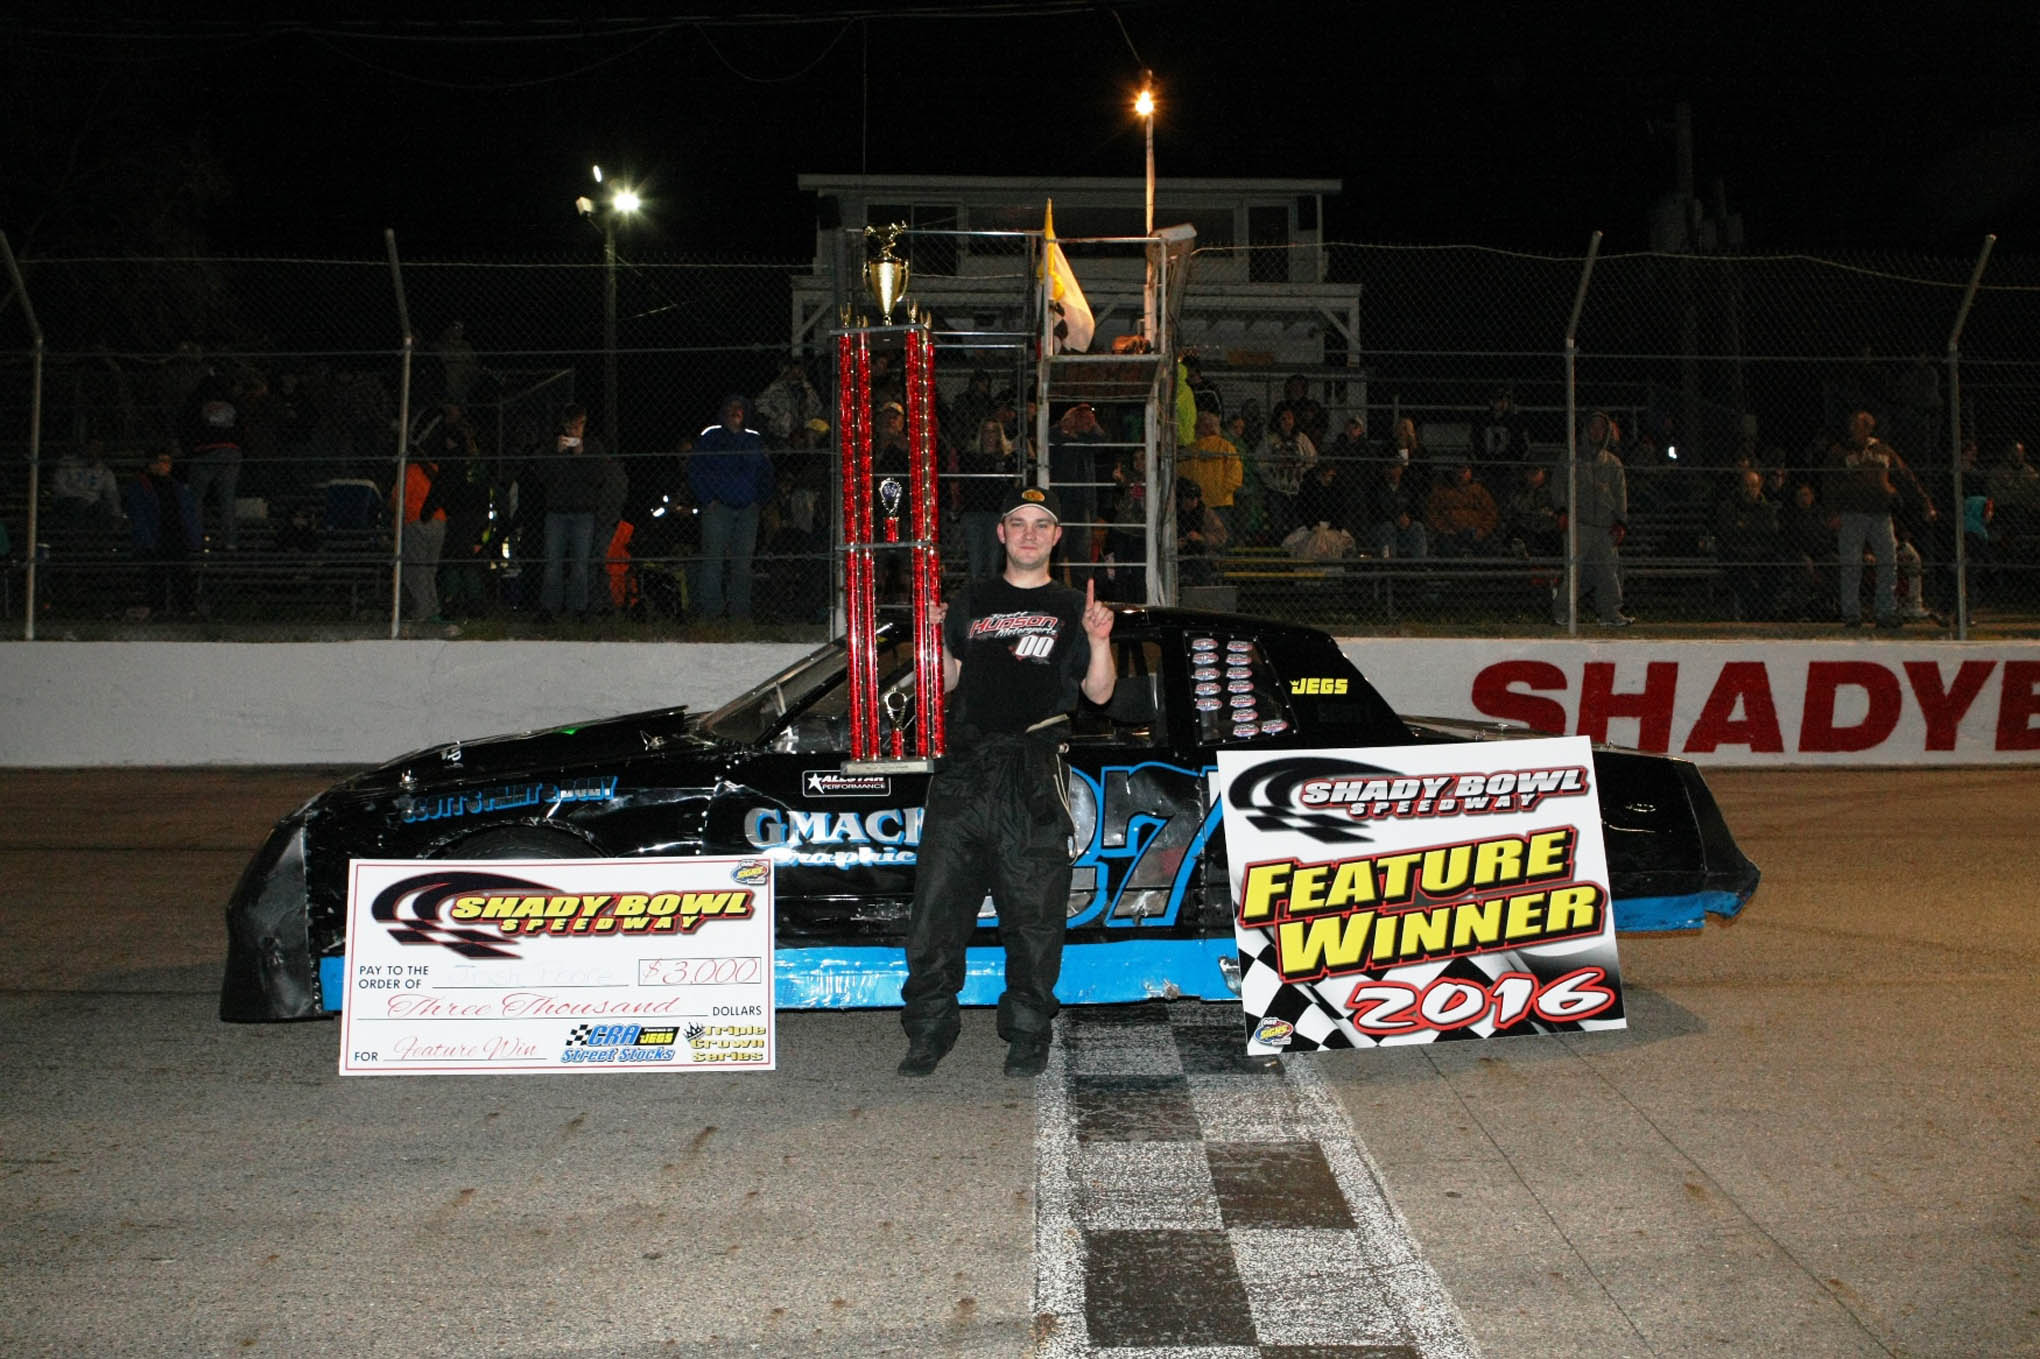 Josh Poore celebrates a win in the Shady Bowl 200